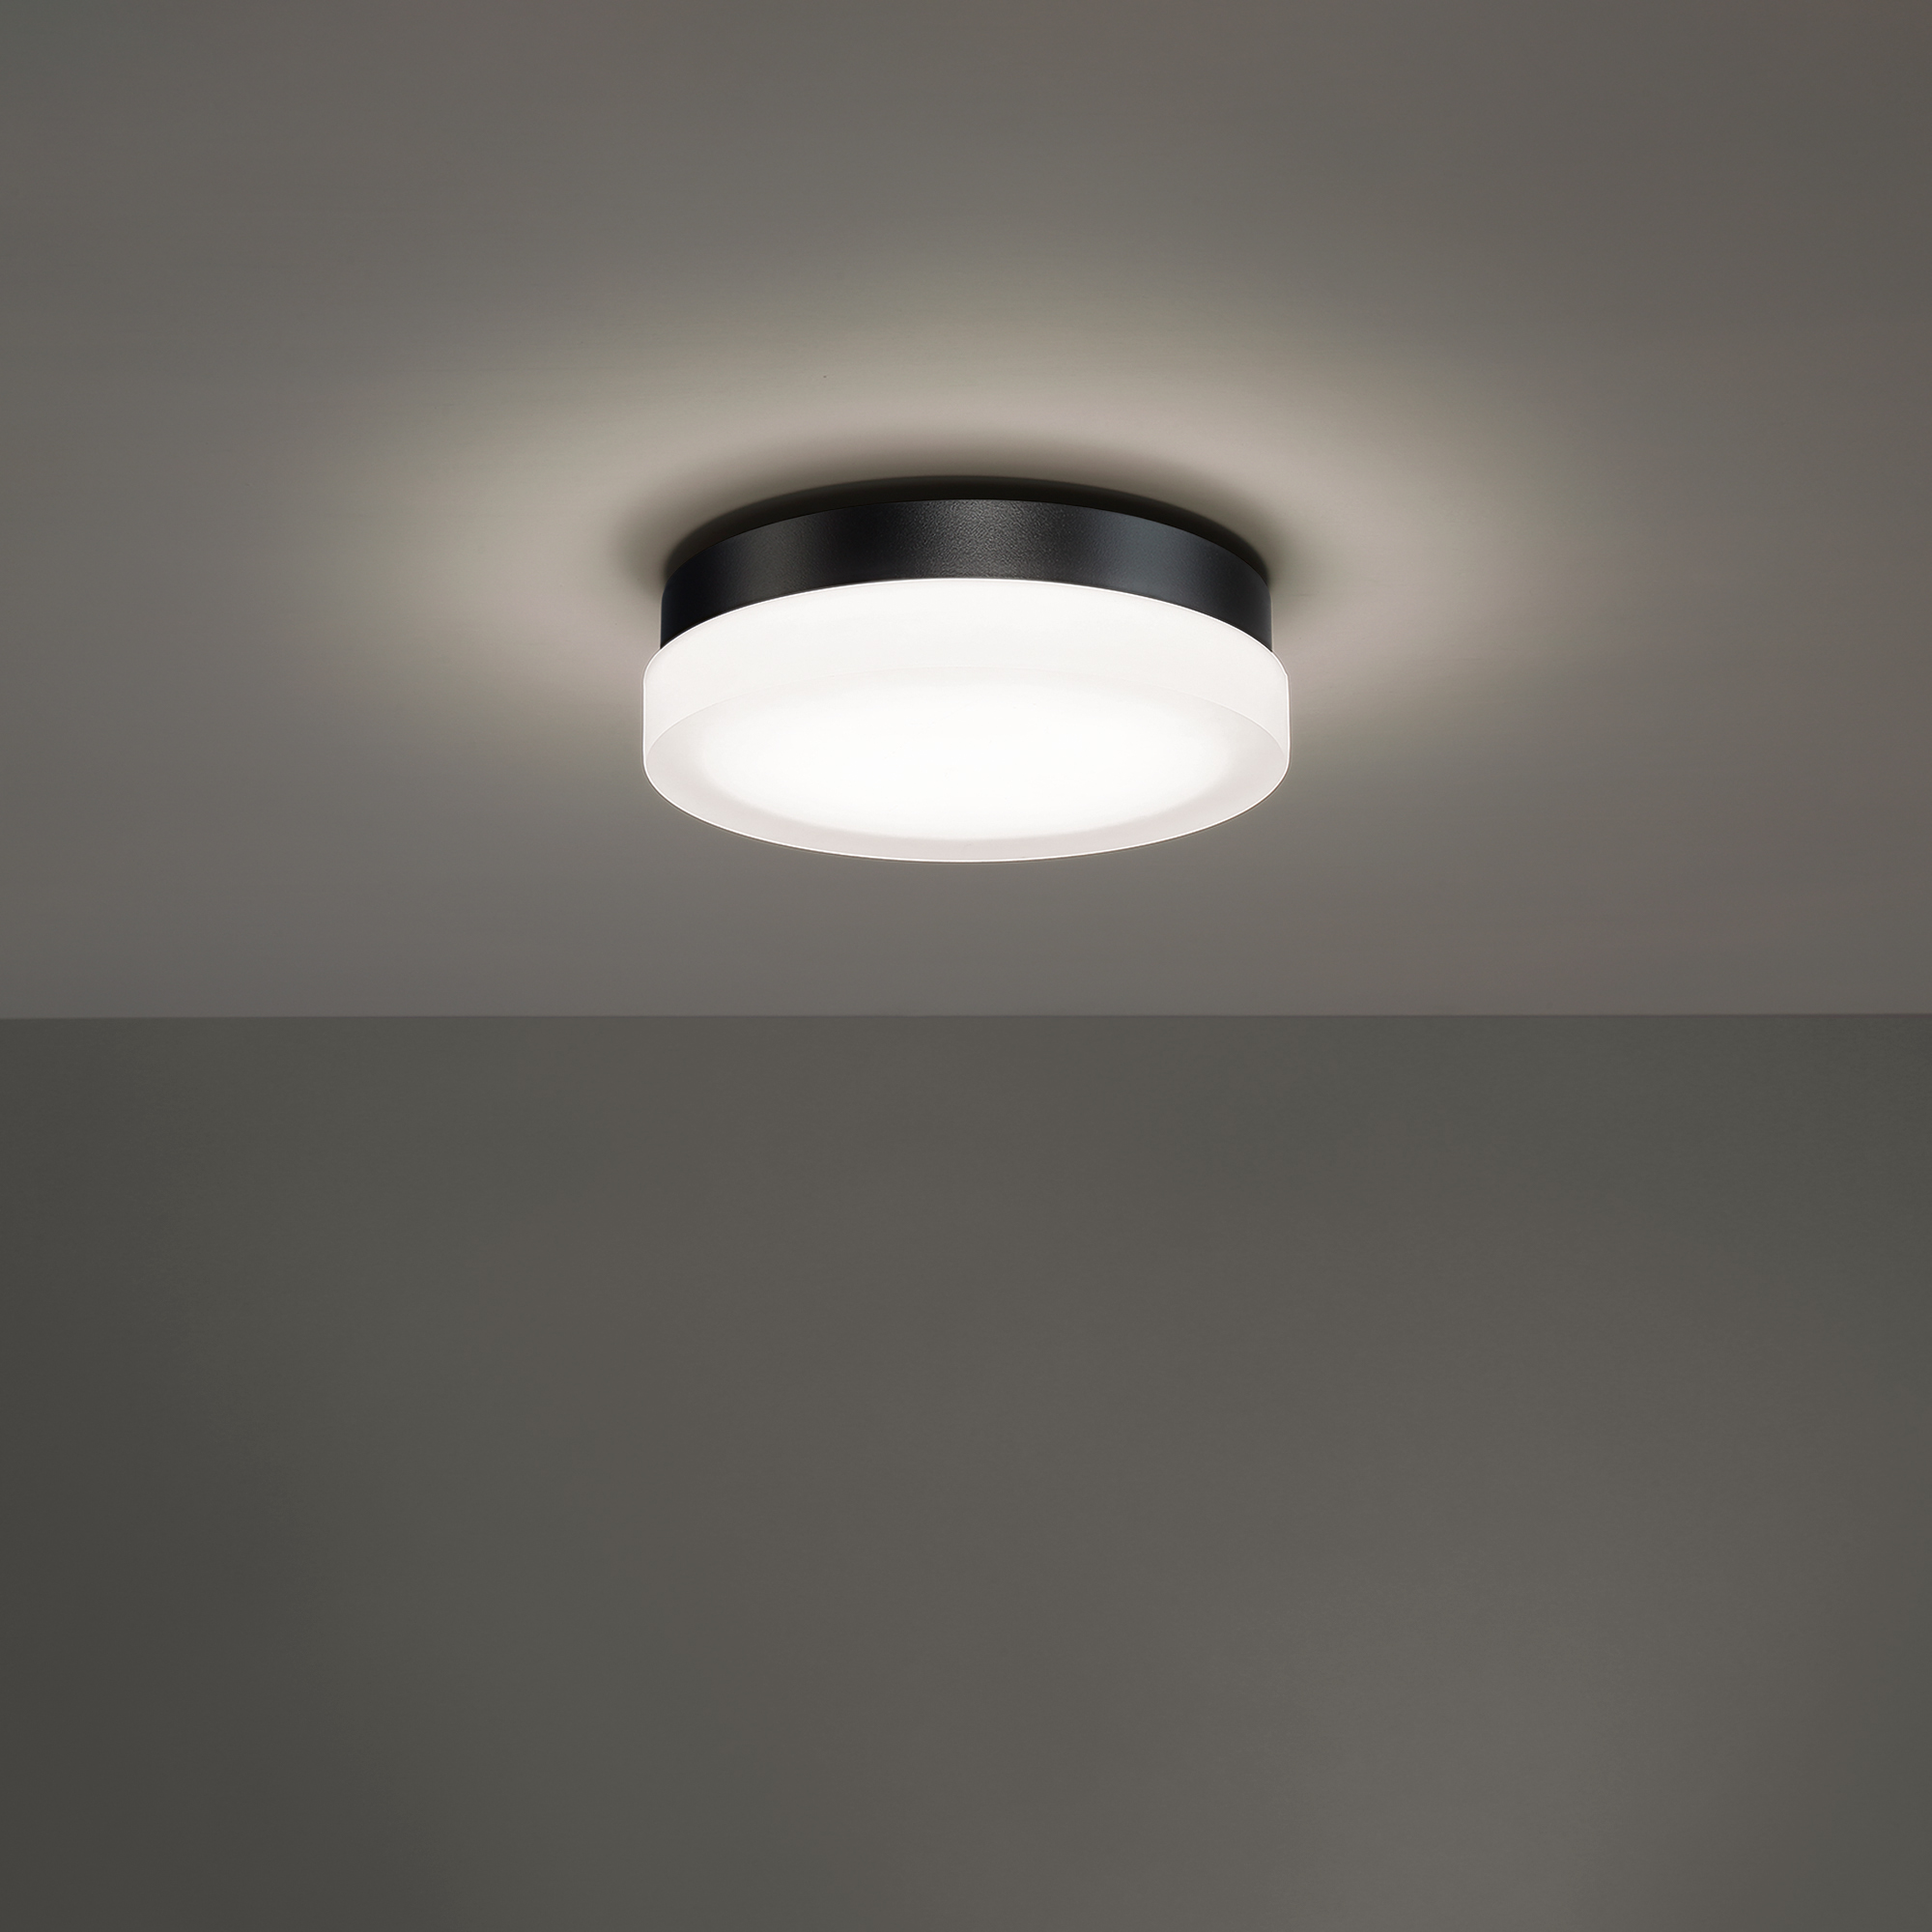 Circa lighting product